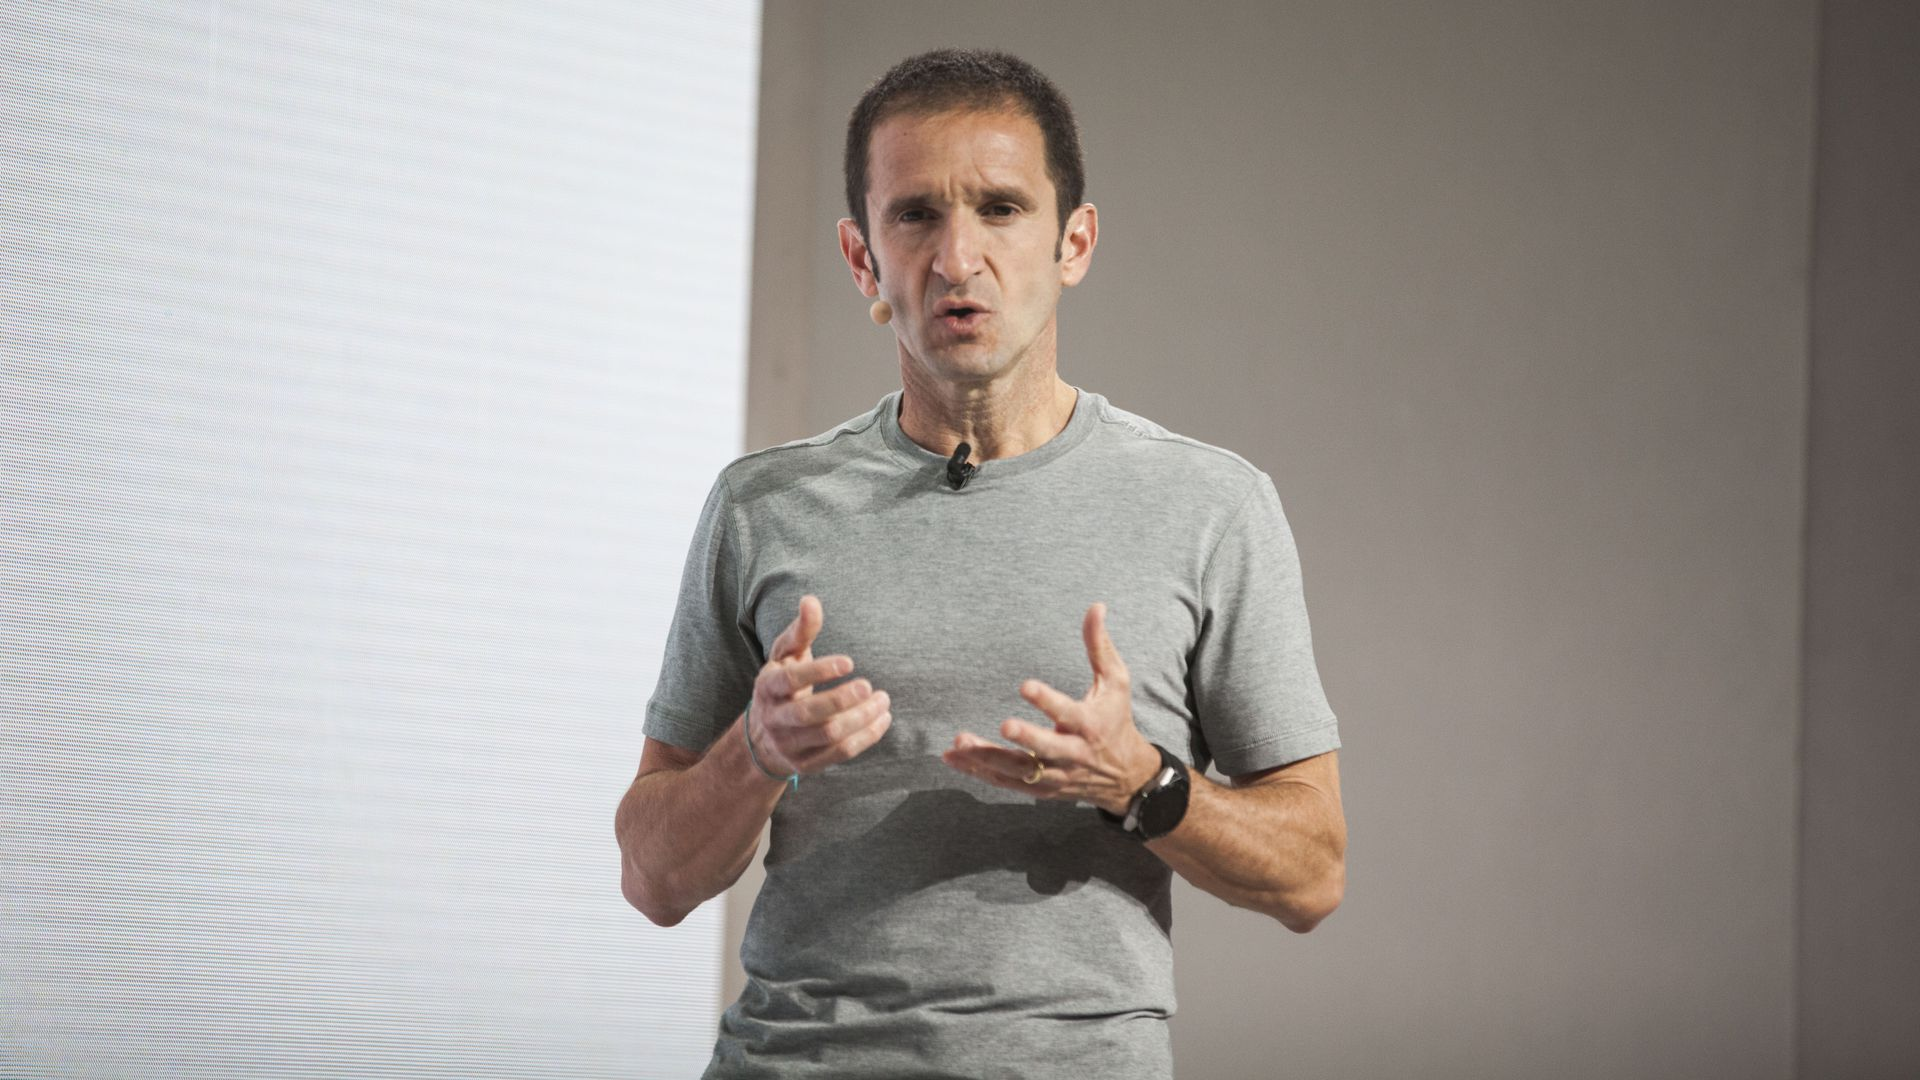 Mario Queiroz, at the 2016 launch of the Google Pixel